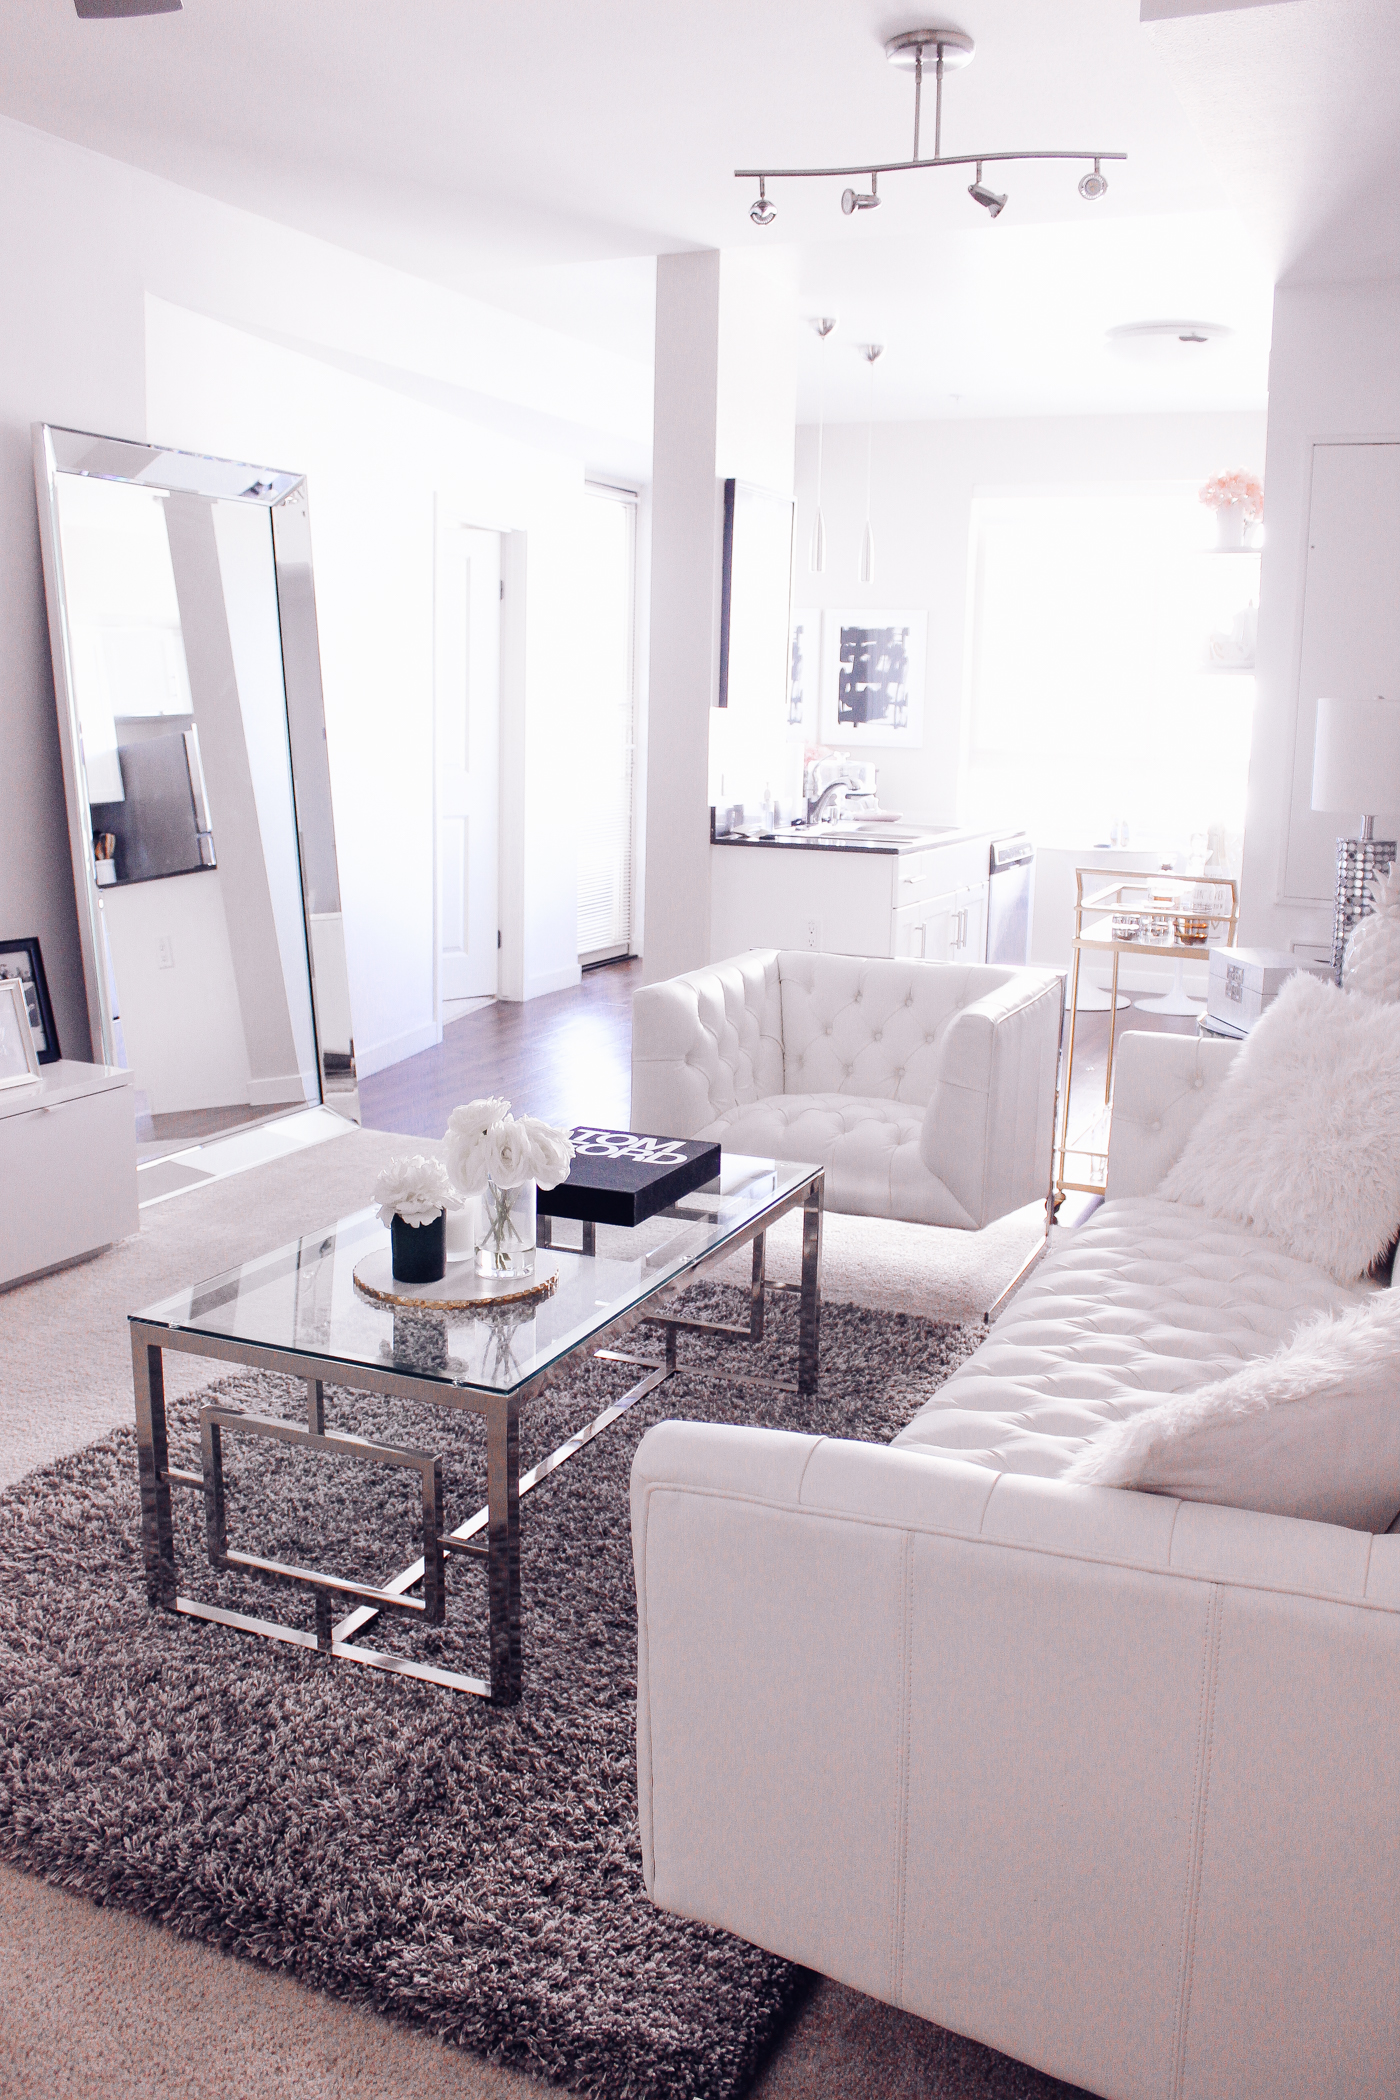 4 Reasons Why Your Home Needs A Leaner Mirror